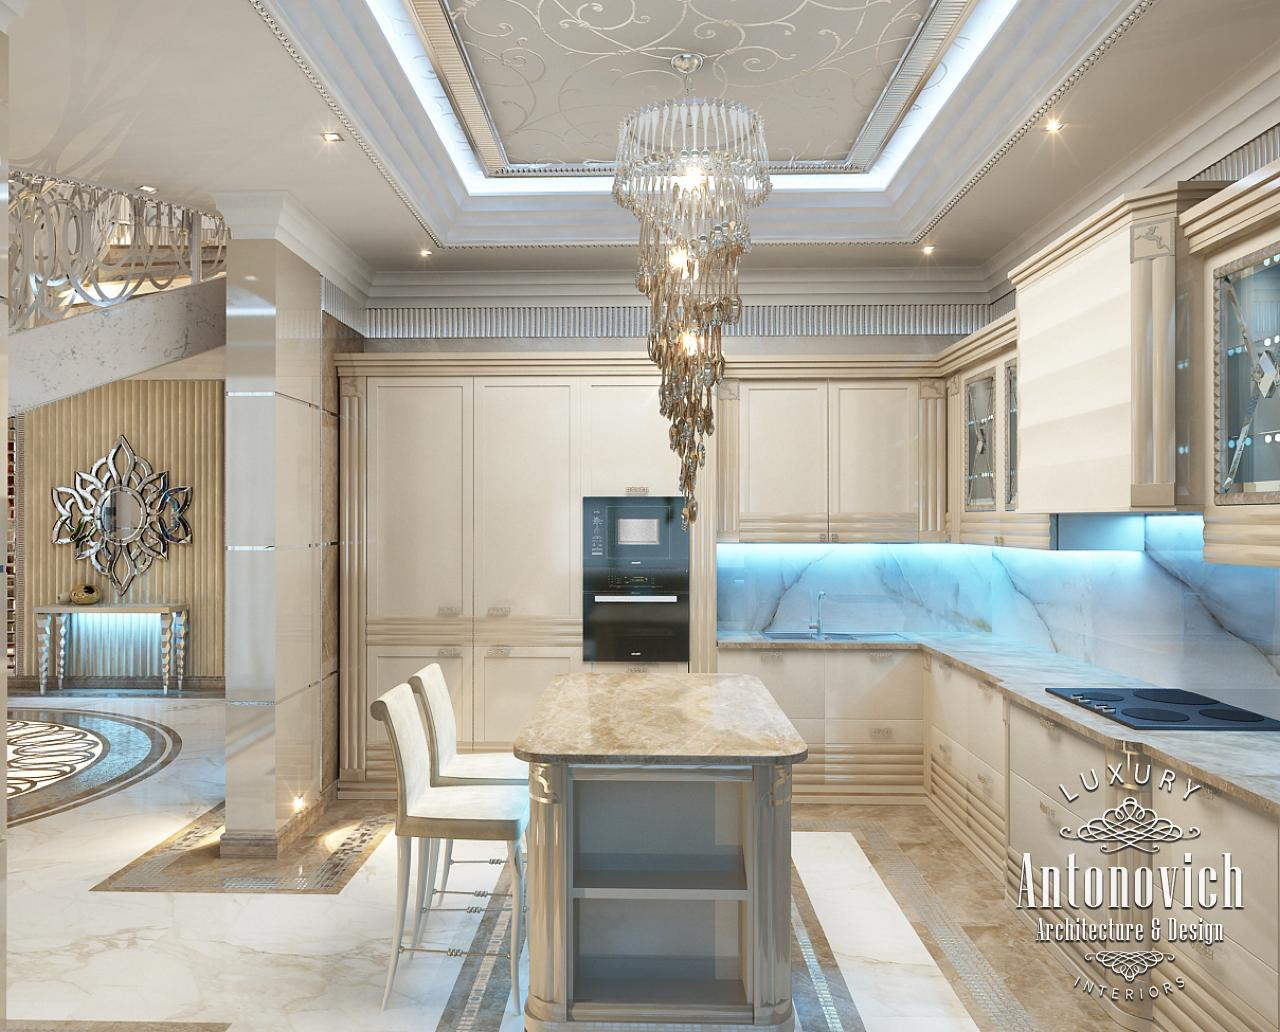 Luxury antonovich design uae luxury interior design dubai for Luxury interior design